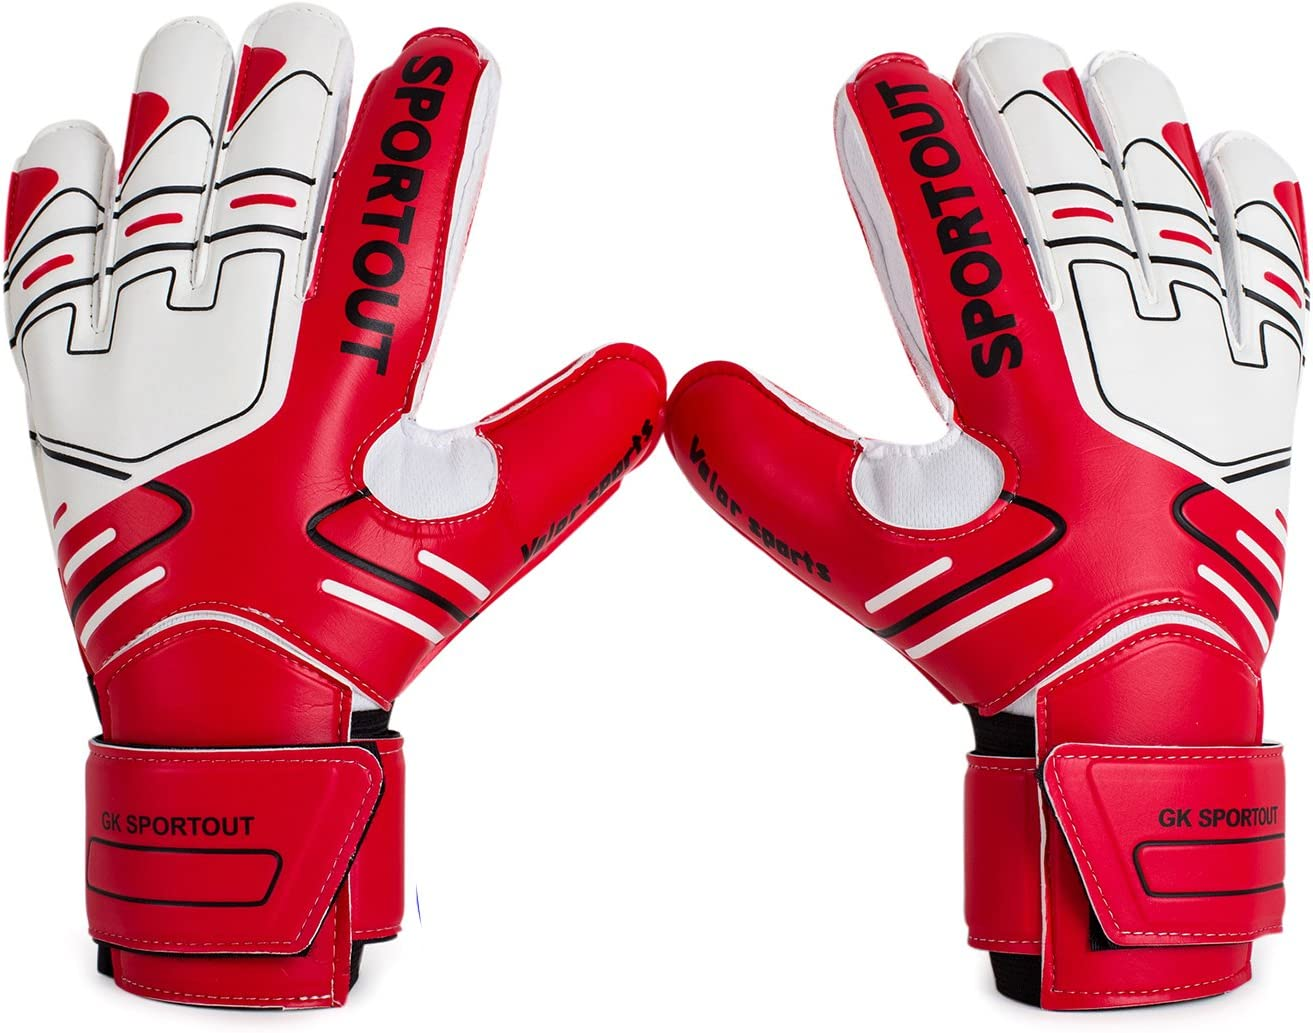 At the price of surprise YouthAdult Goalie Goalkeeper Gloves Opening large release sale Strong for Toughes Grip The